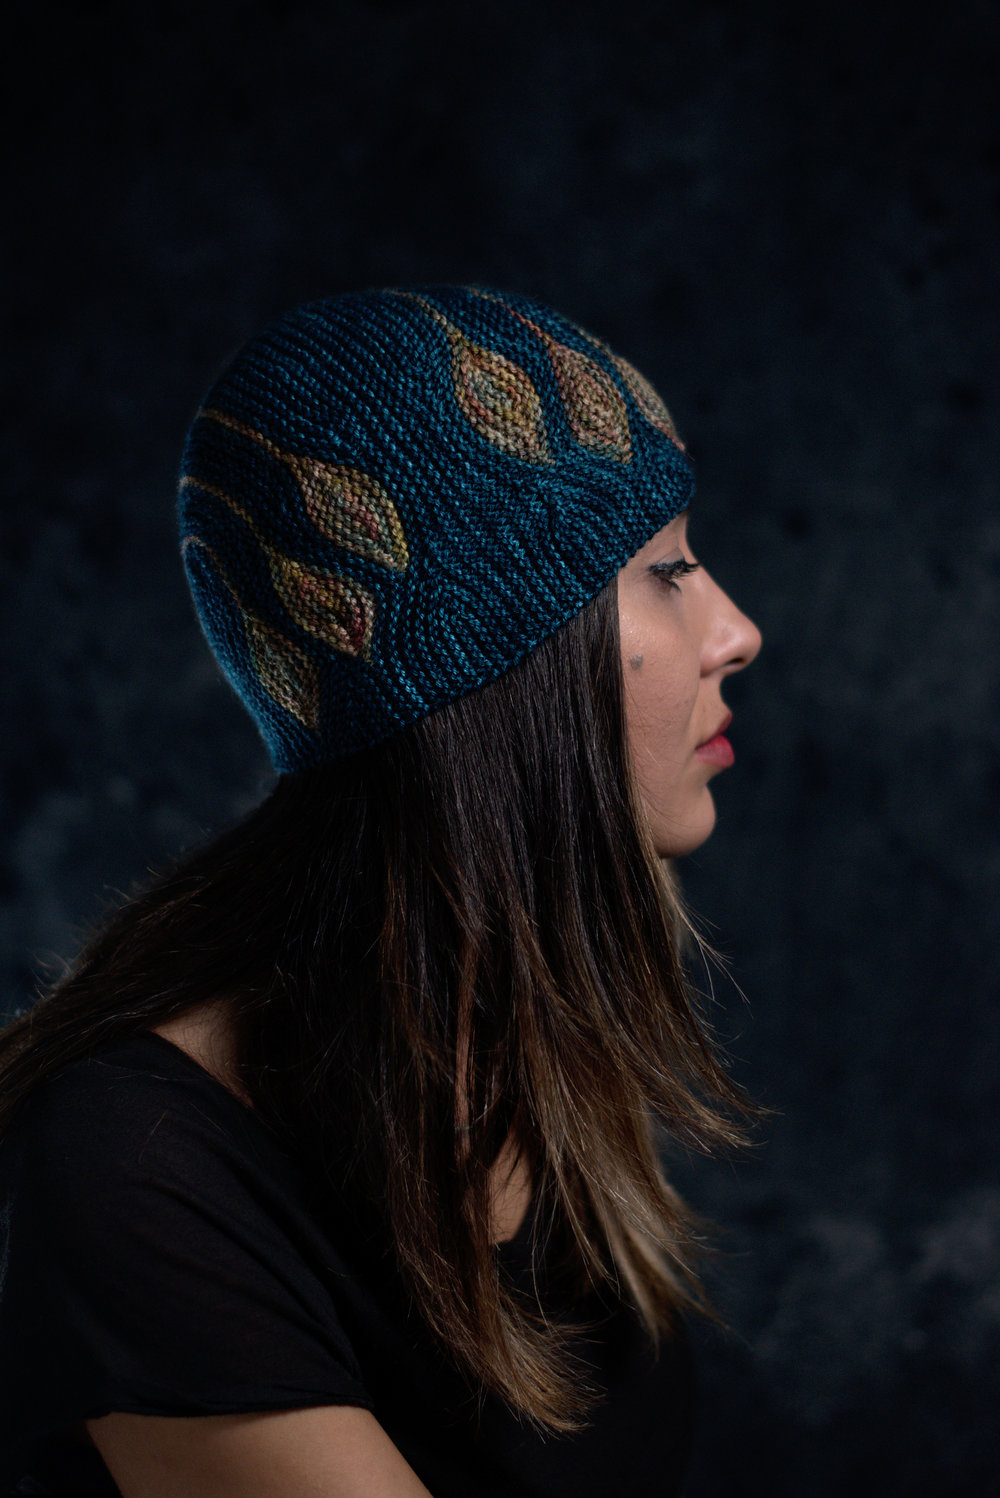 Chiral sideways knit short row colourwork hat knitting pattern